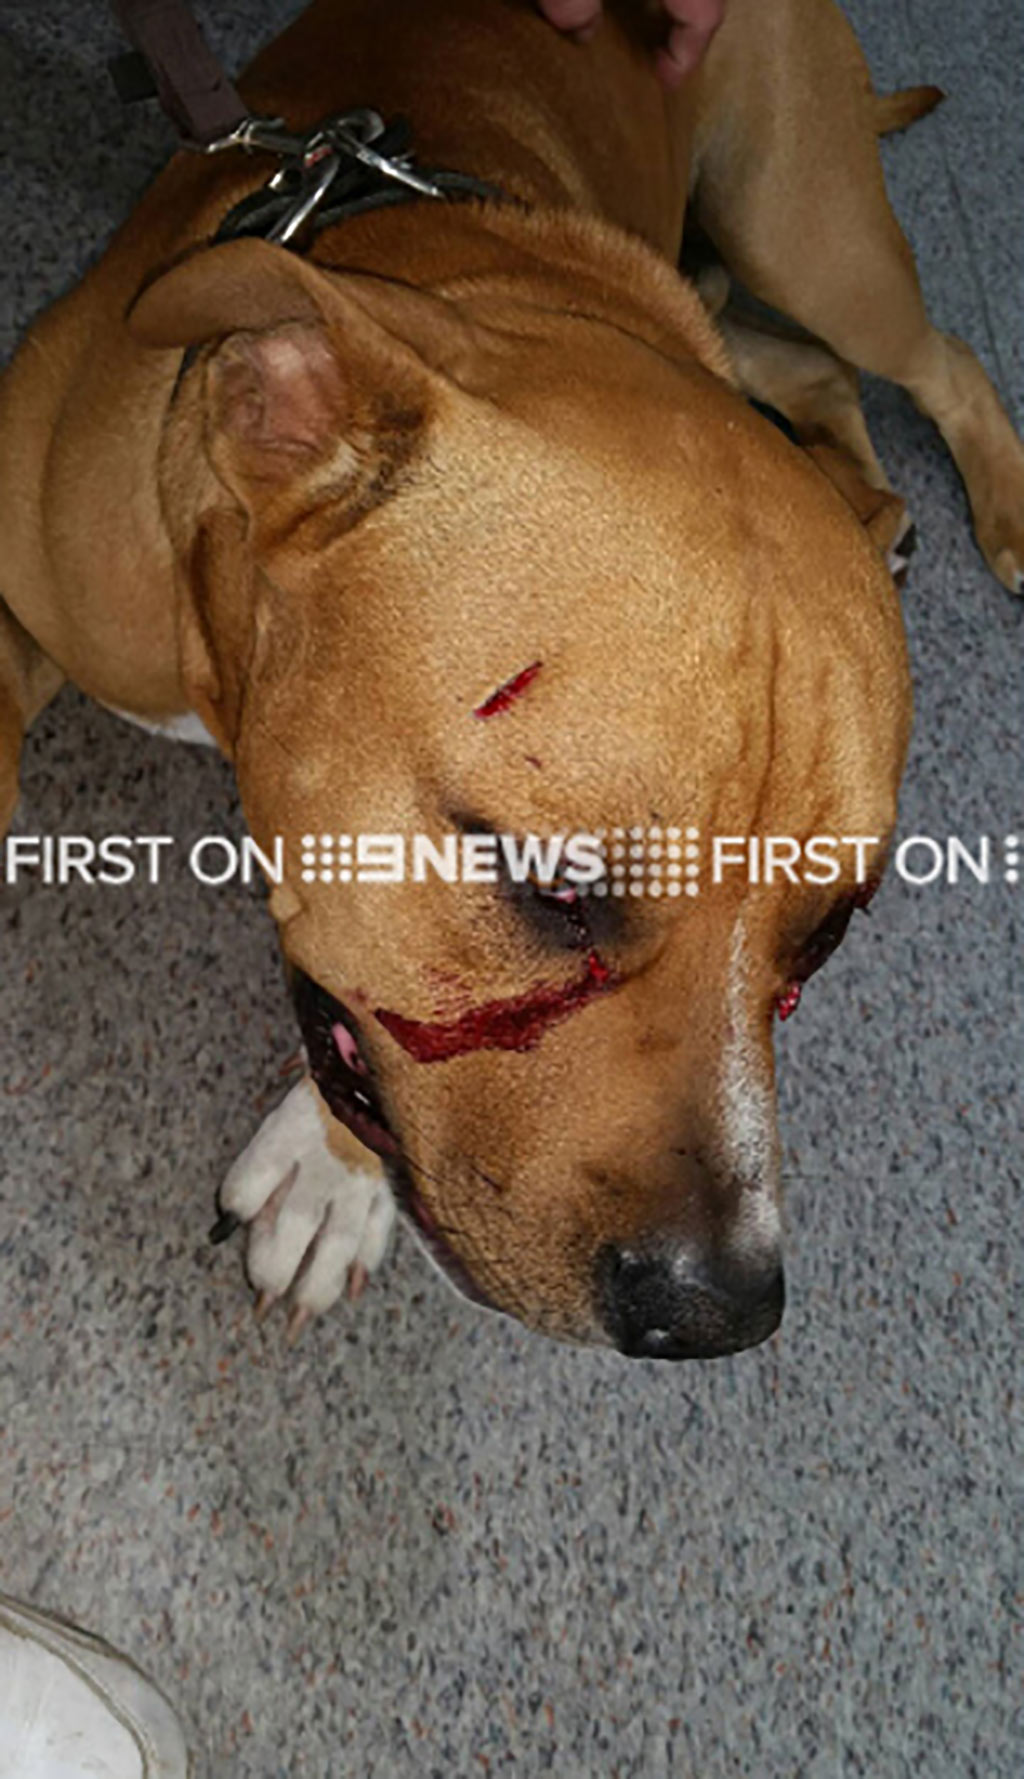 Juice suffered extensive injuries during the attack. (9NEWS)